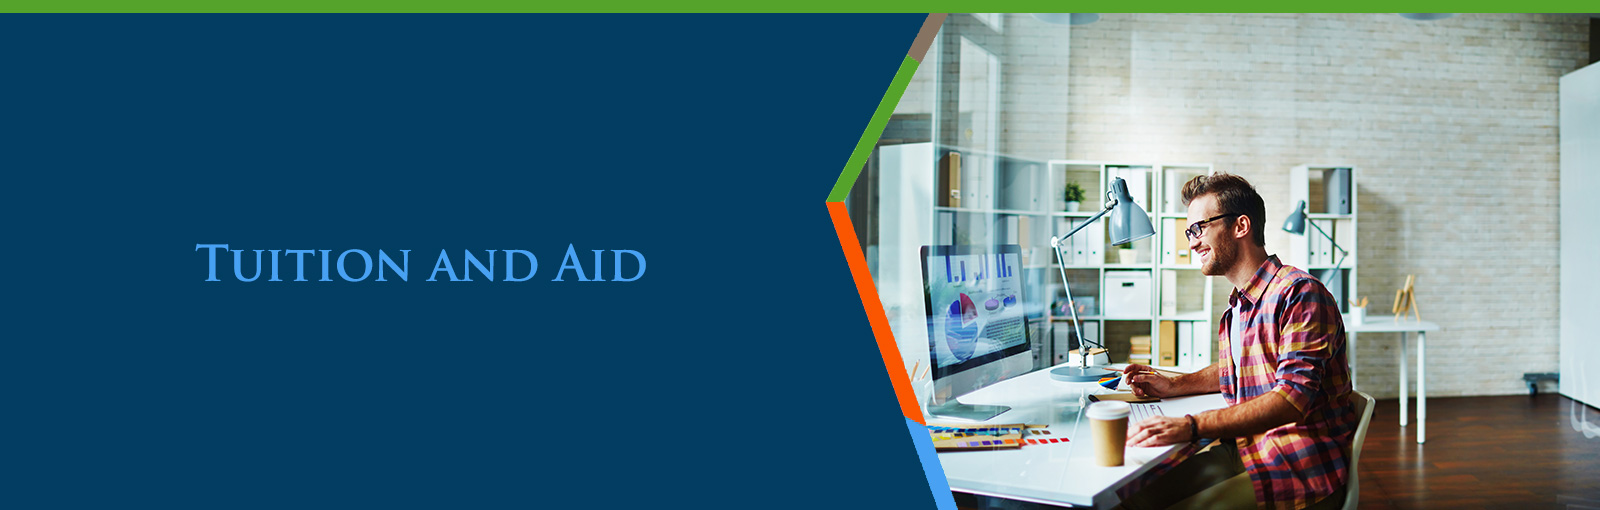 tuition and aid section header